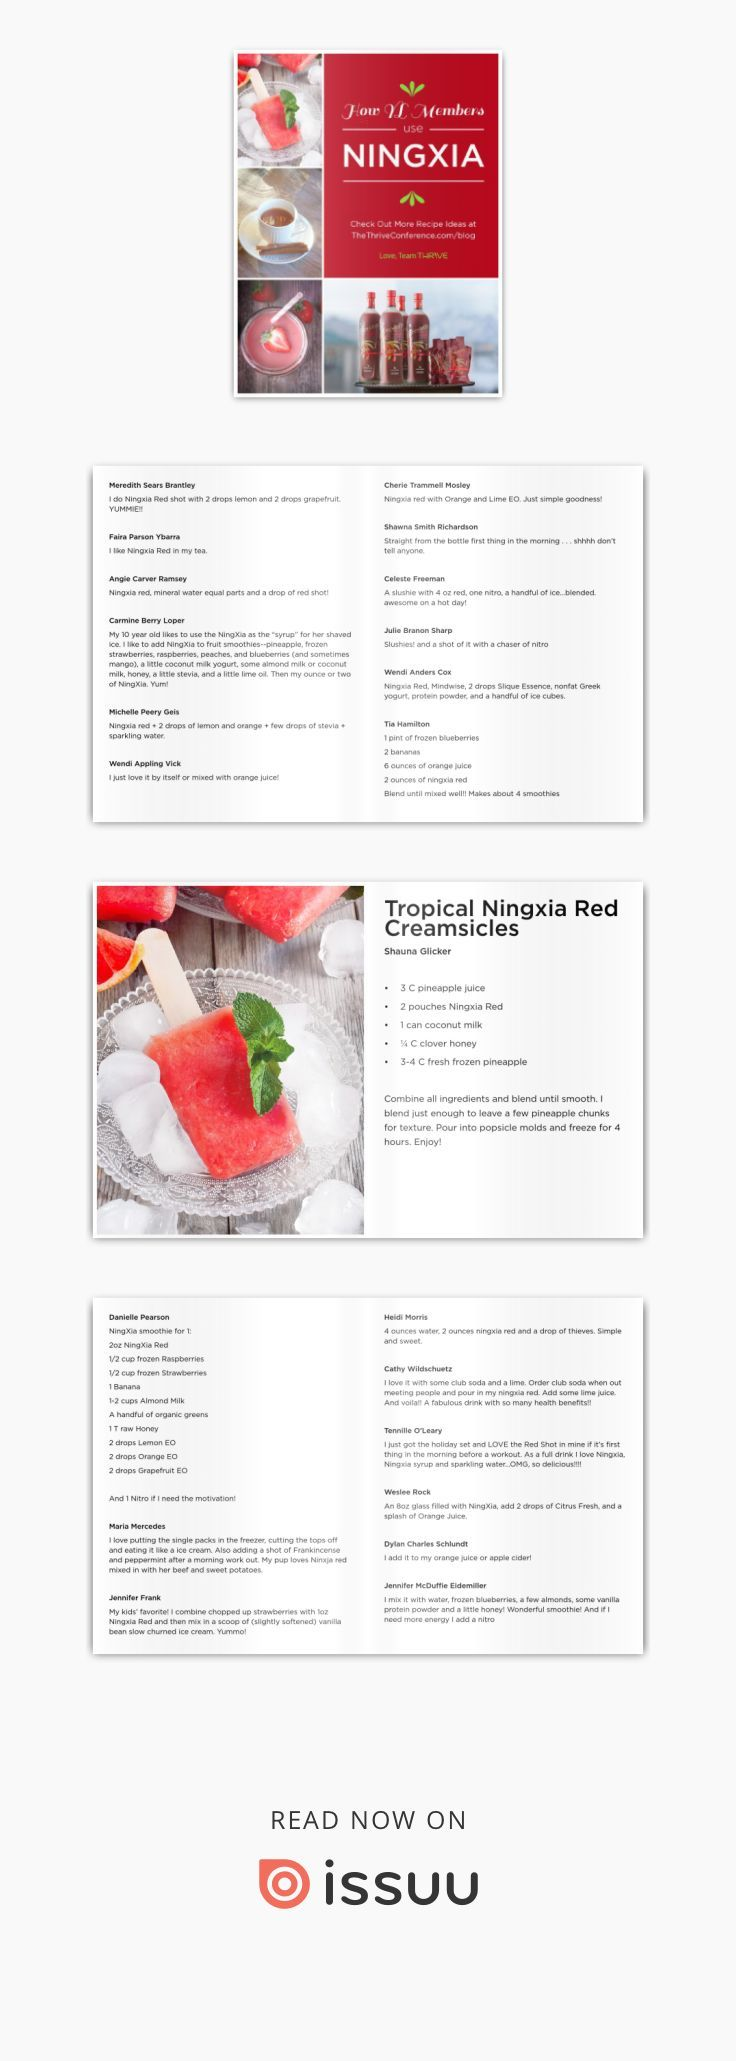 Issuu is a digital publishing platform that makes it simple to publish magazines, catalogs, newspapers, books, and more online. Easily share your publications and get them in front of Issuu's millions of monthly readers. Title: Ningxia book, Author: Thrive Conference, Name: Ningxia book, Length: 32 pages, Page: 1, Published: 2014-11-23